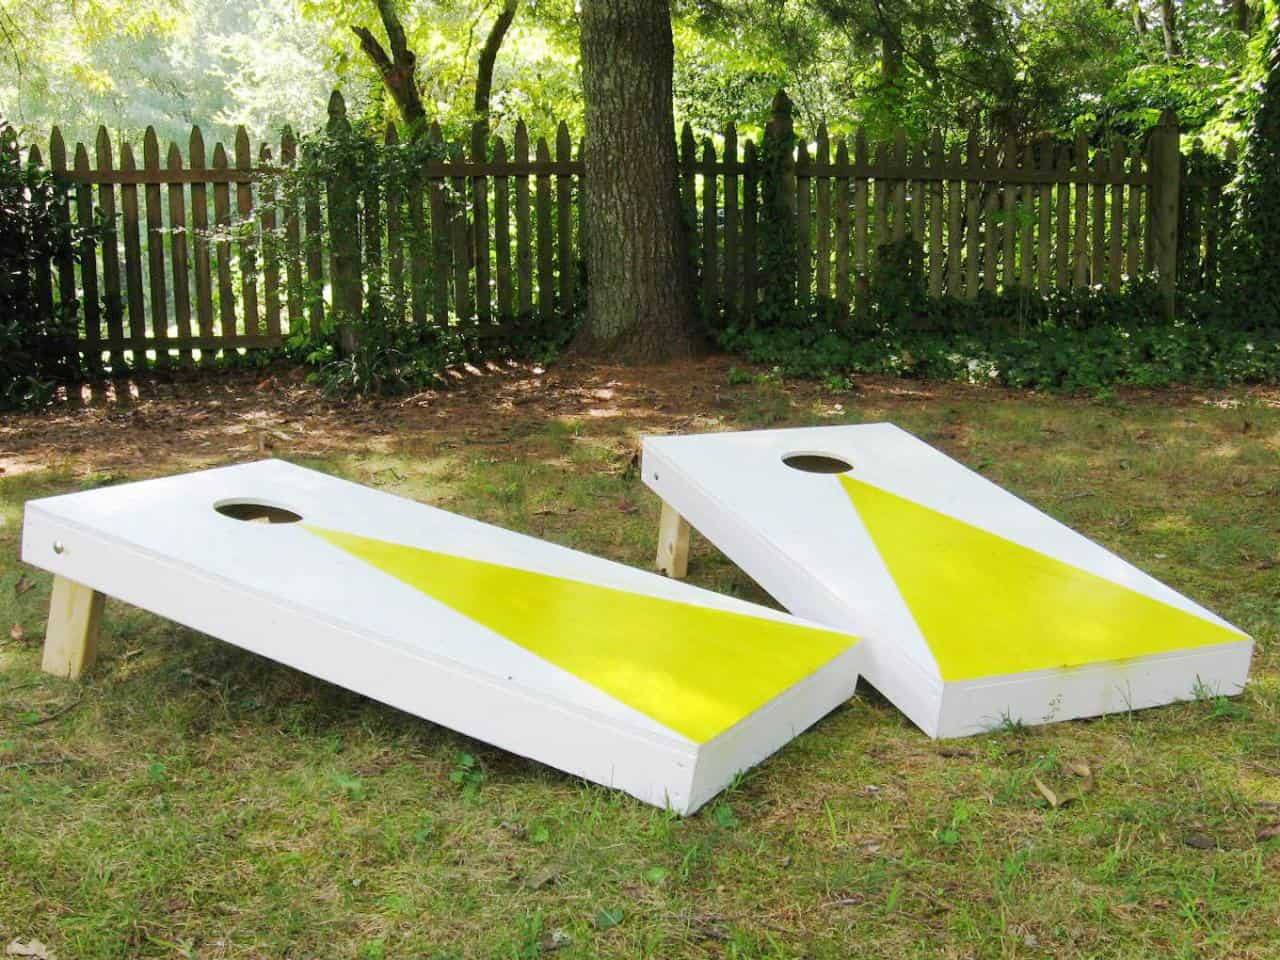 Cornhole diy game